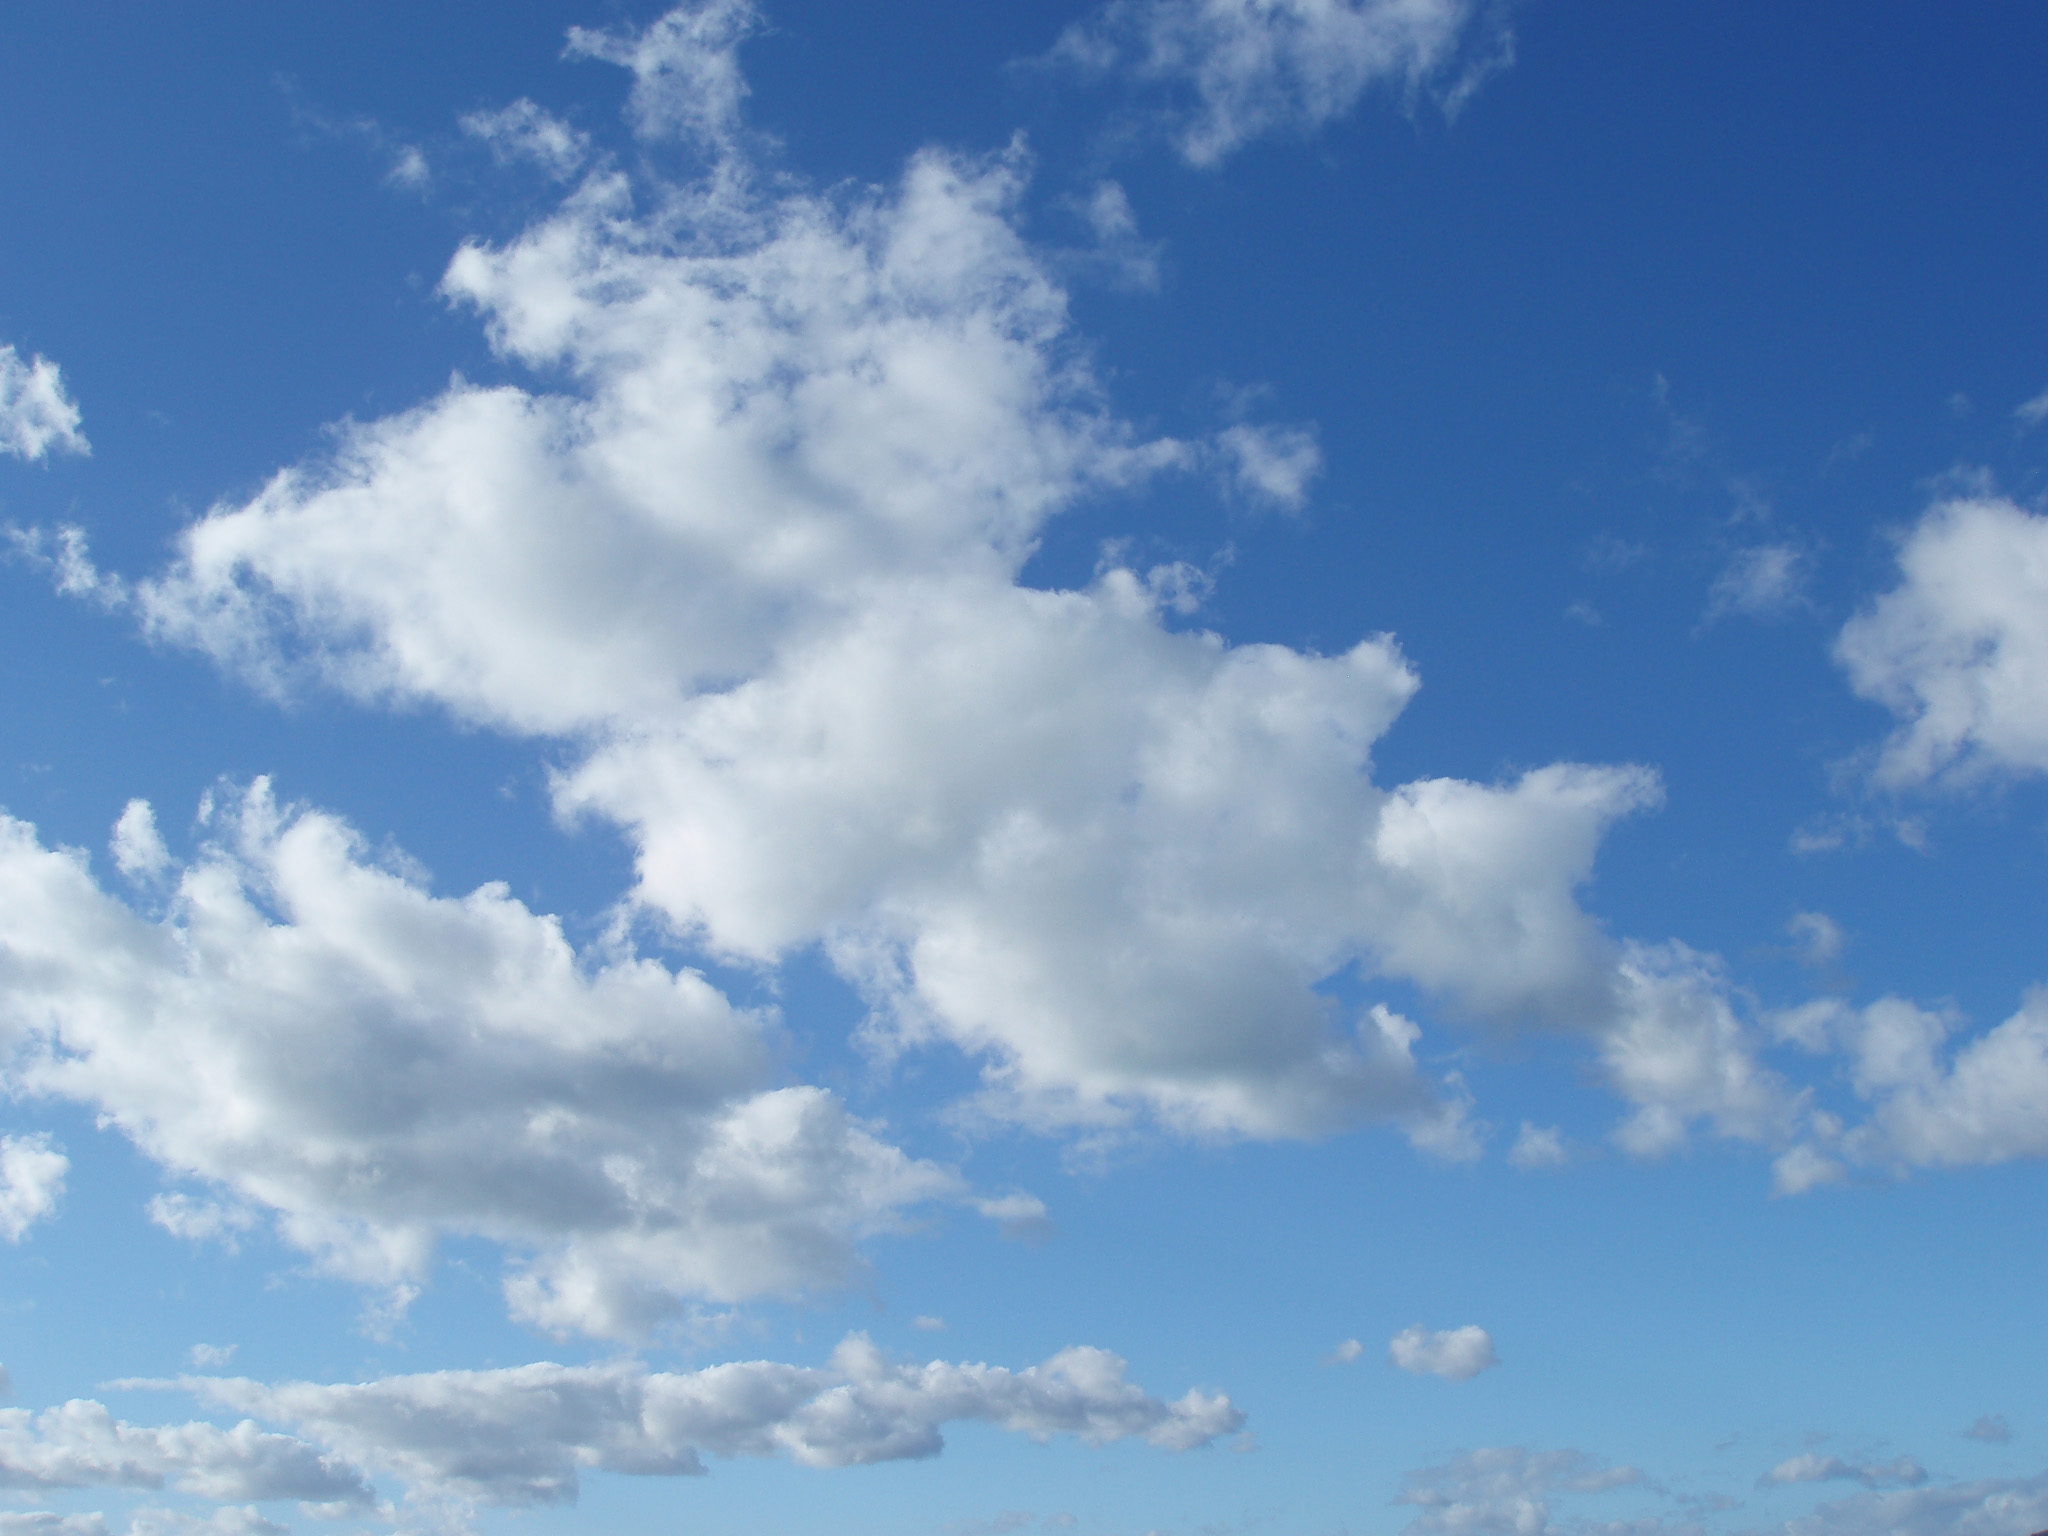 Free image of fluffy clouds